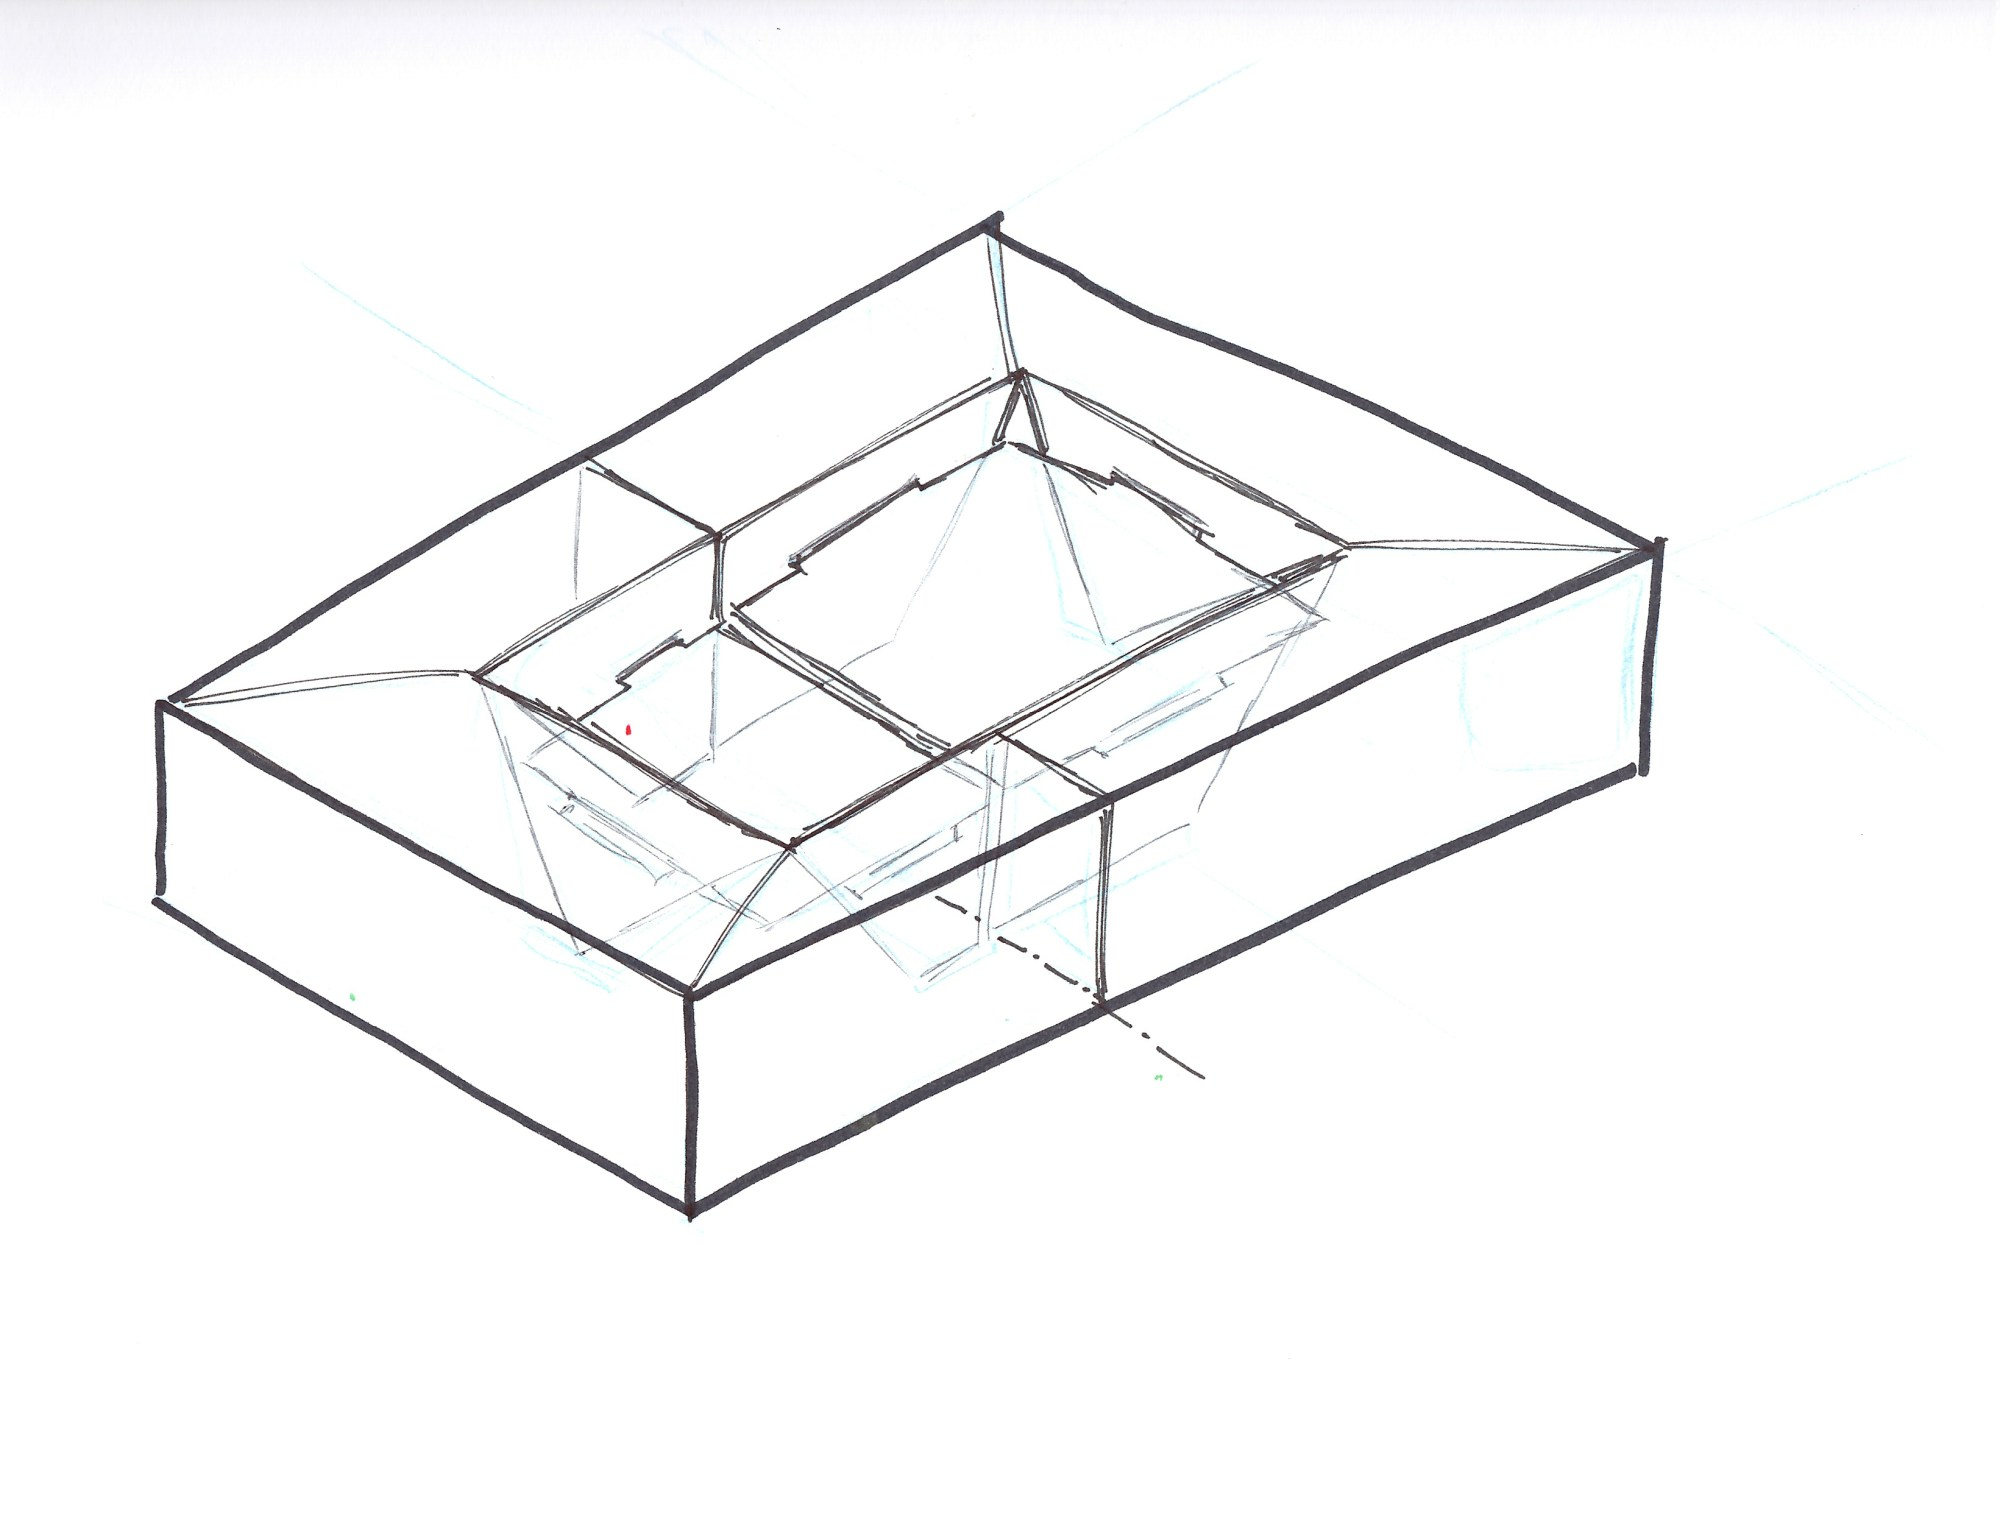 hight resolution of i sketched out how the box might look and how the phone and charger might be integrated into the box